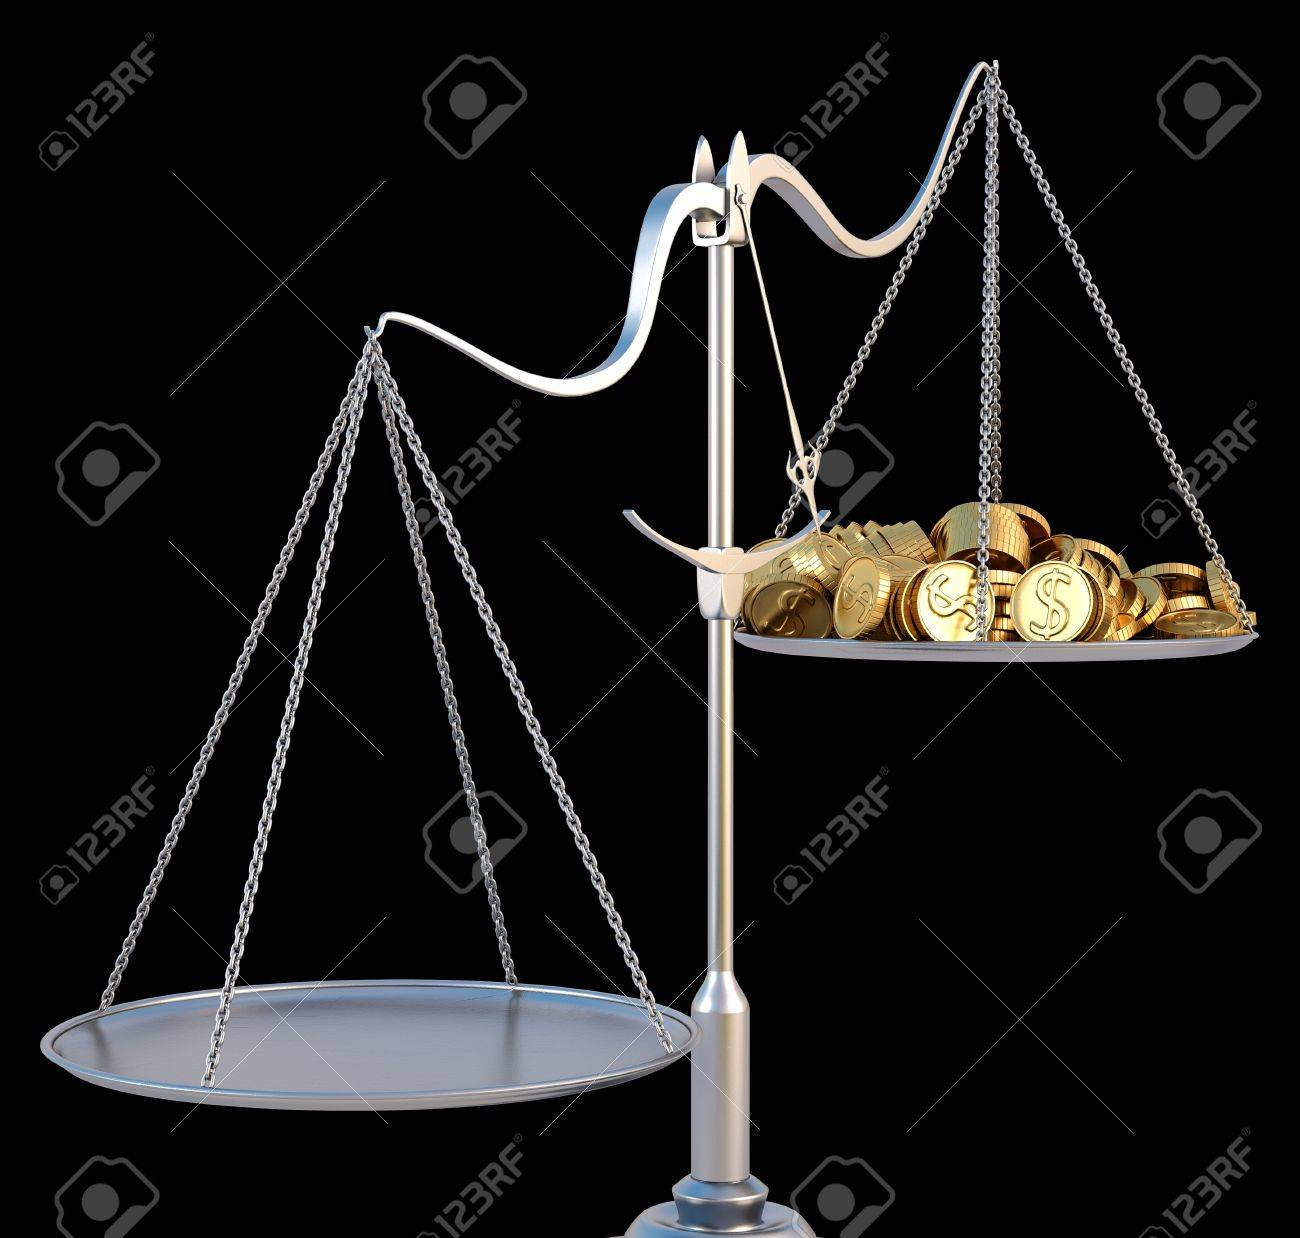 jewelry scales with a heap gold coins. isolated on black. Stock Photo - 10083440